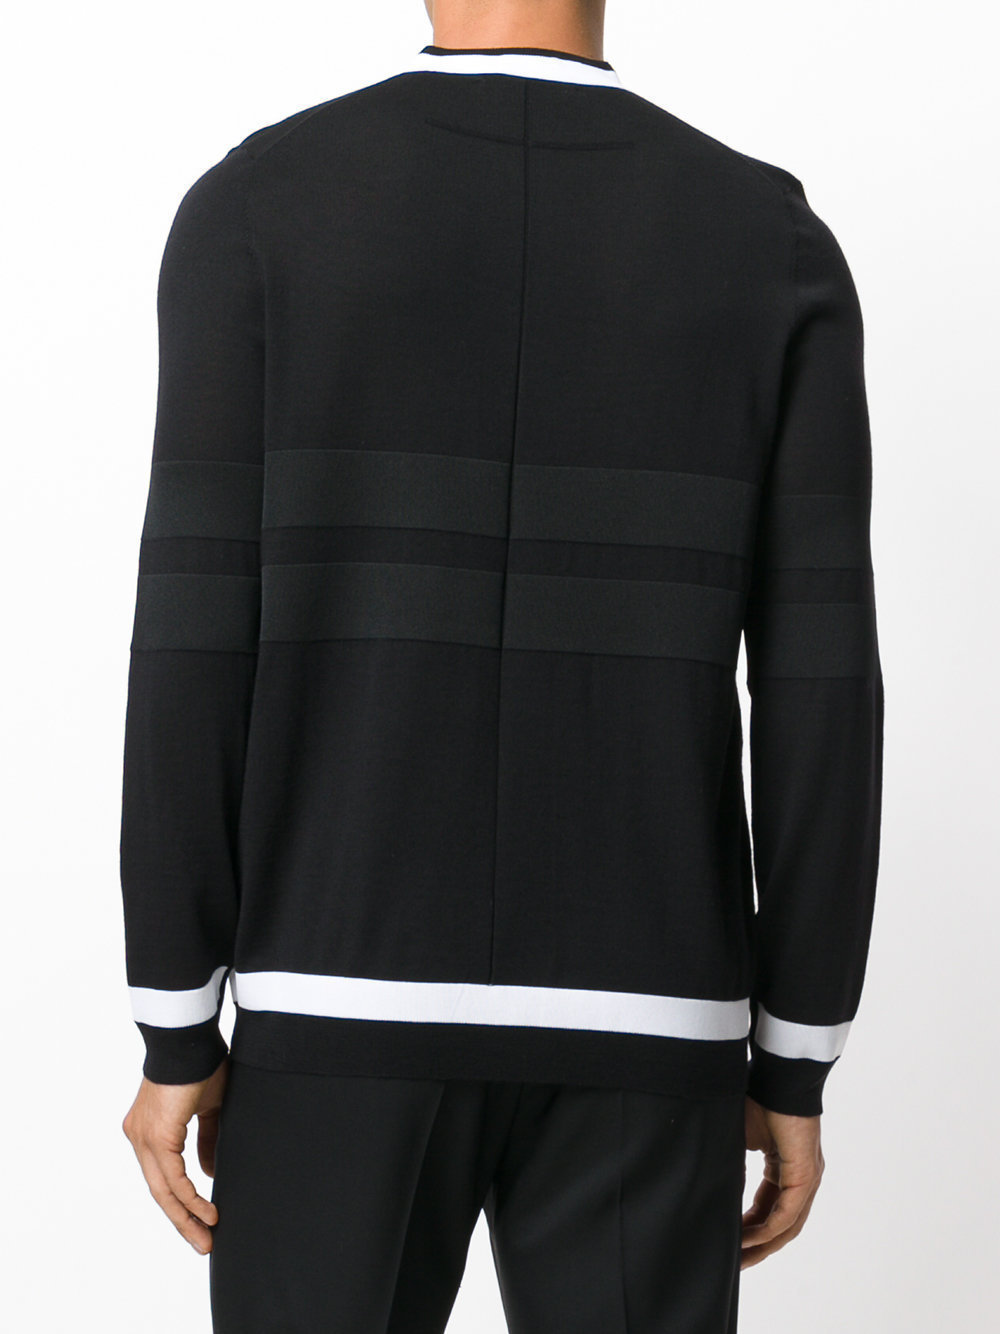 GIVENCHY 17AW CONTRAST DETAIL ウール ニット_BLACK